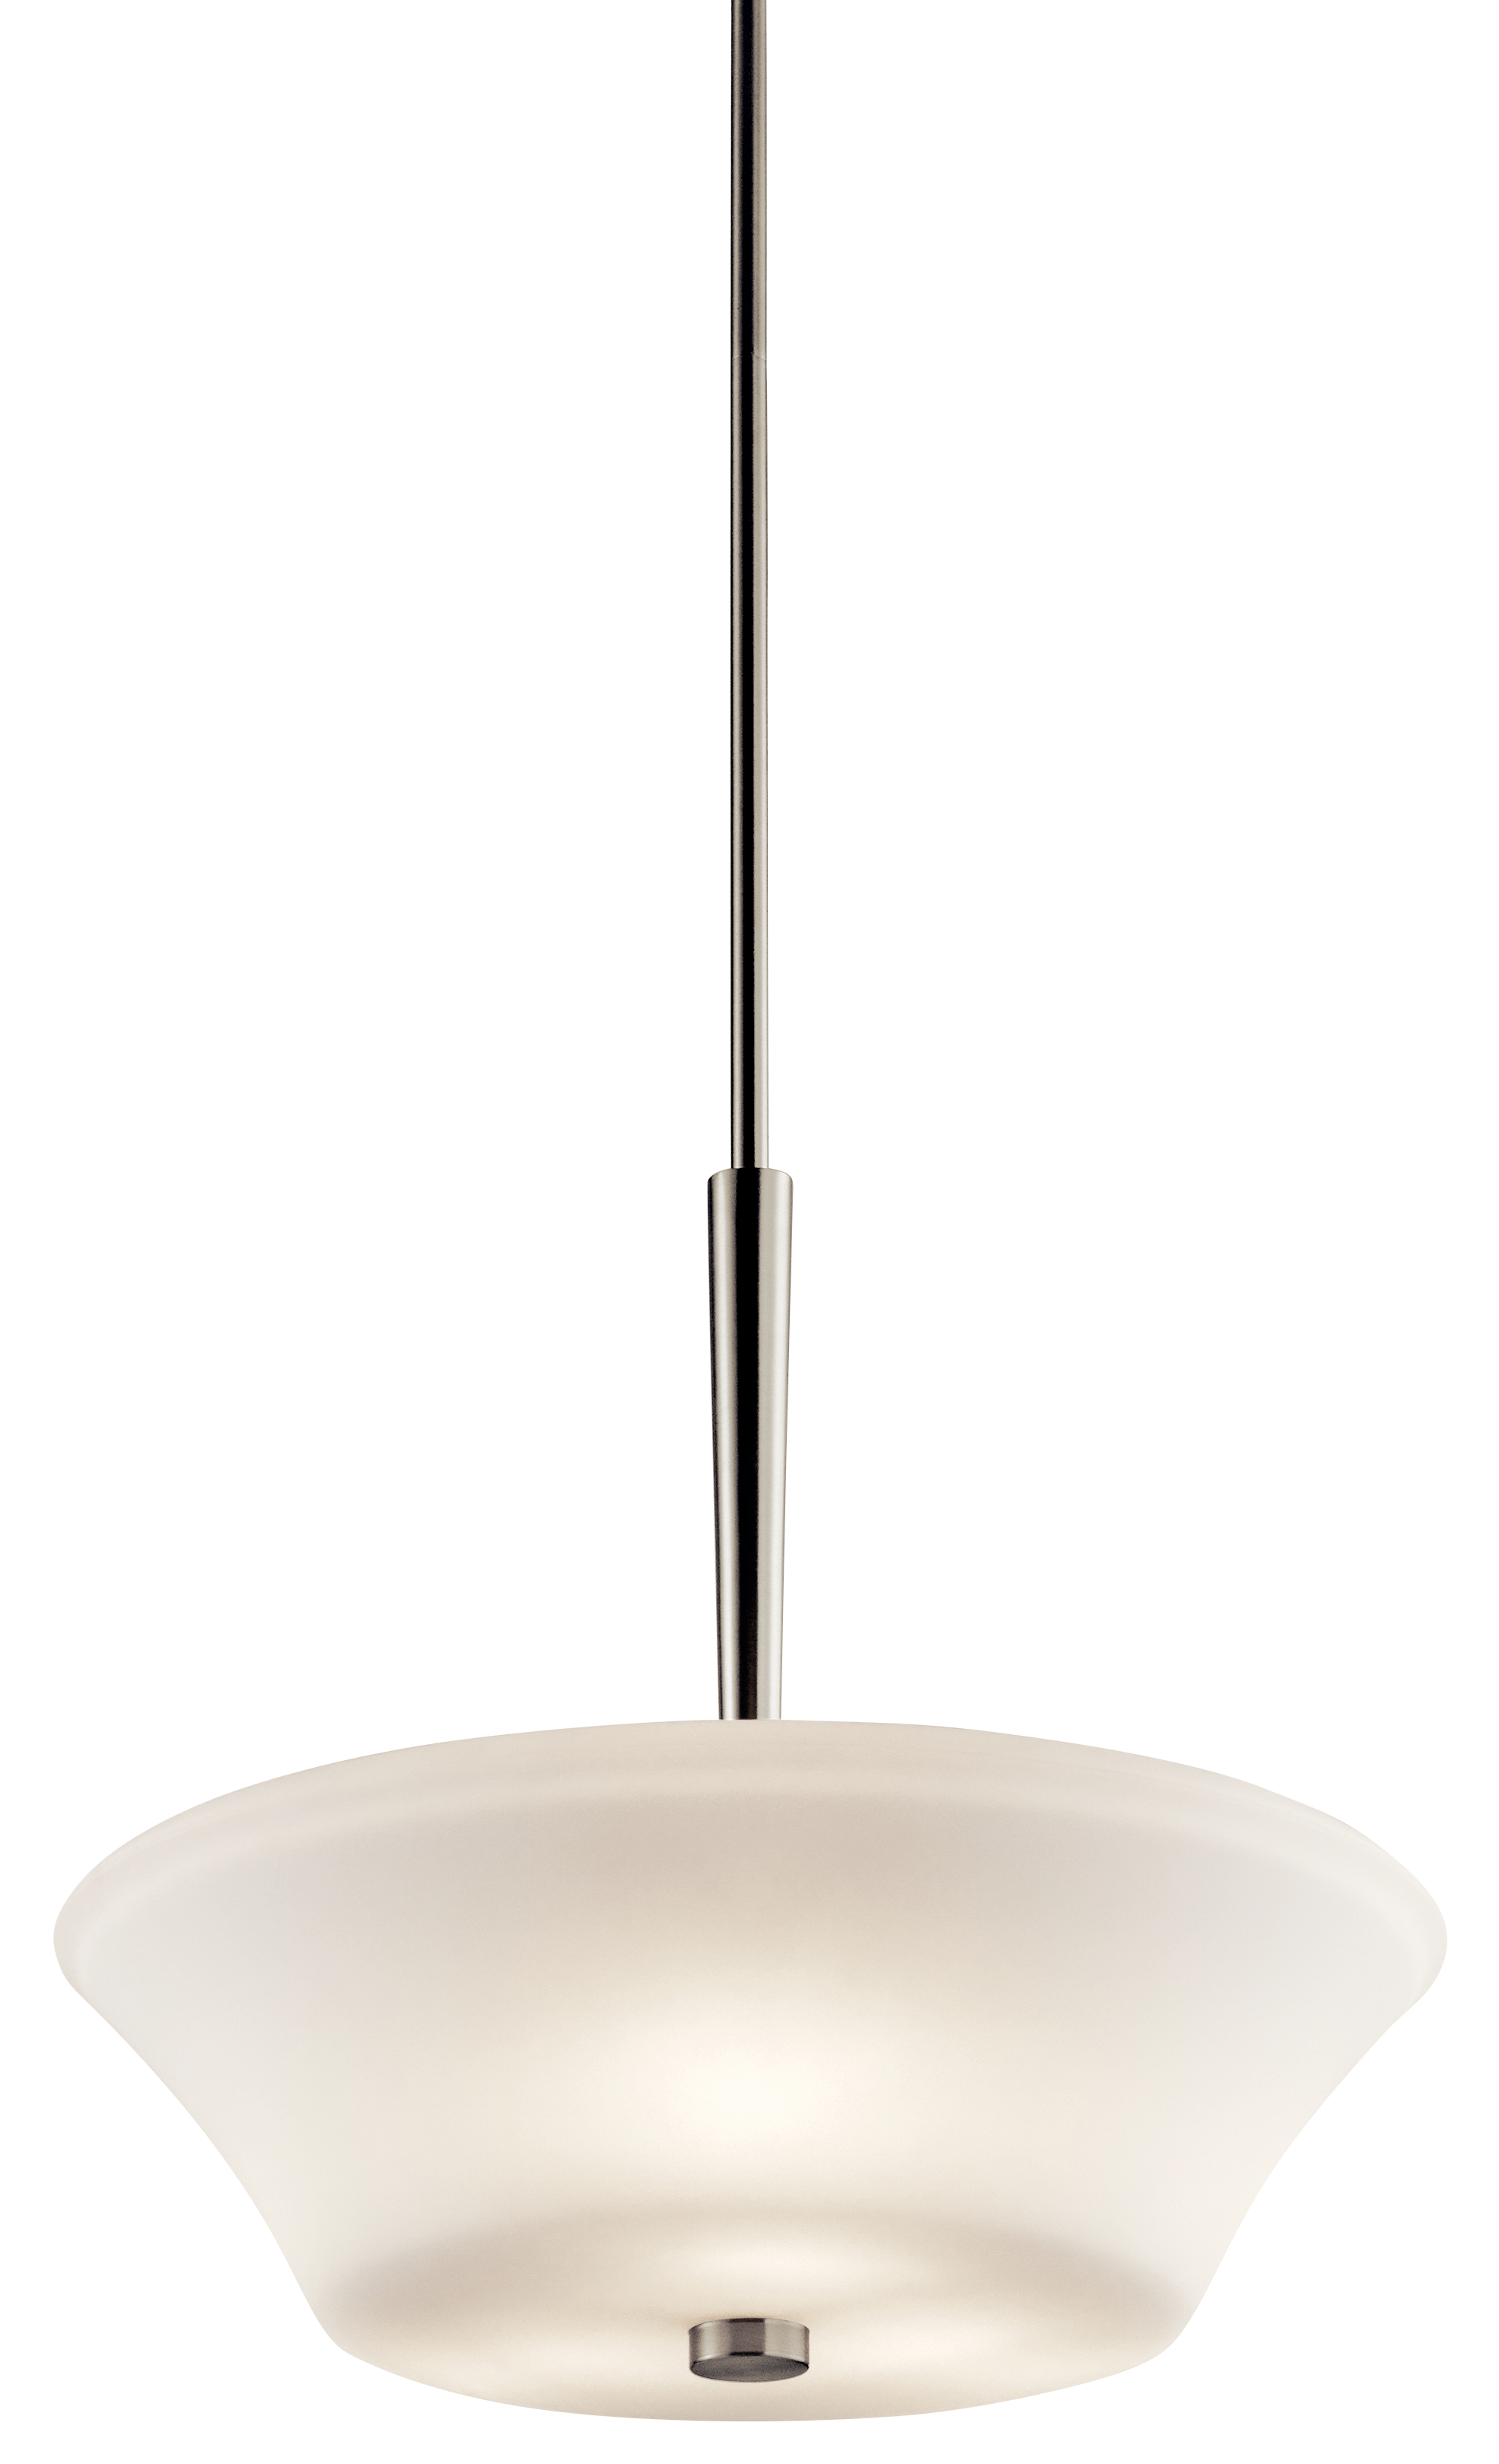 Kichler Aubrey Pendant Light with Satin Etched White Shade - Brushed Nickel (43667NI)